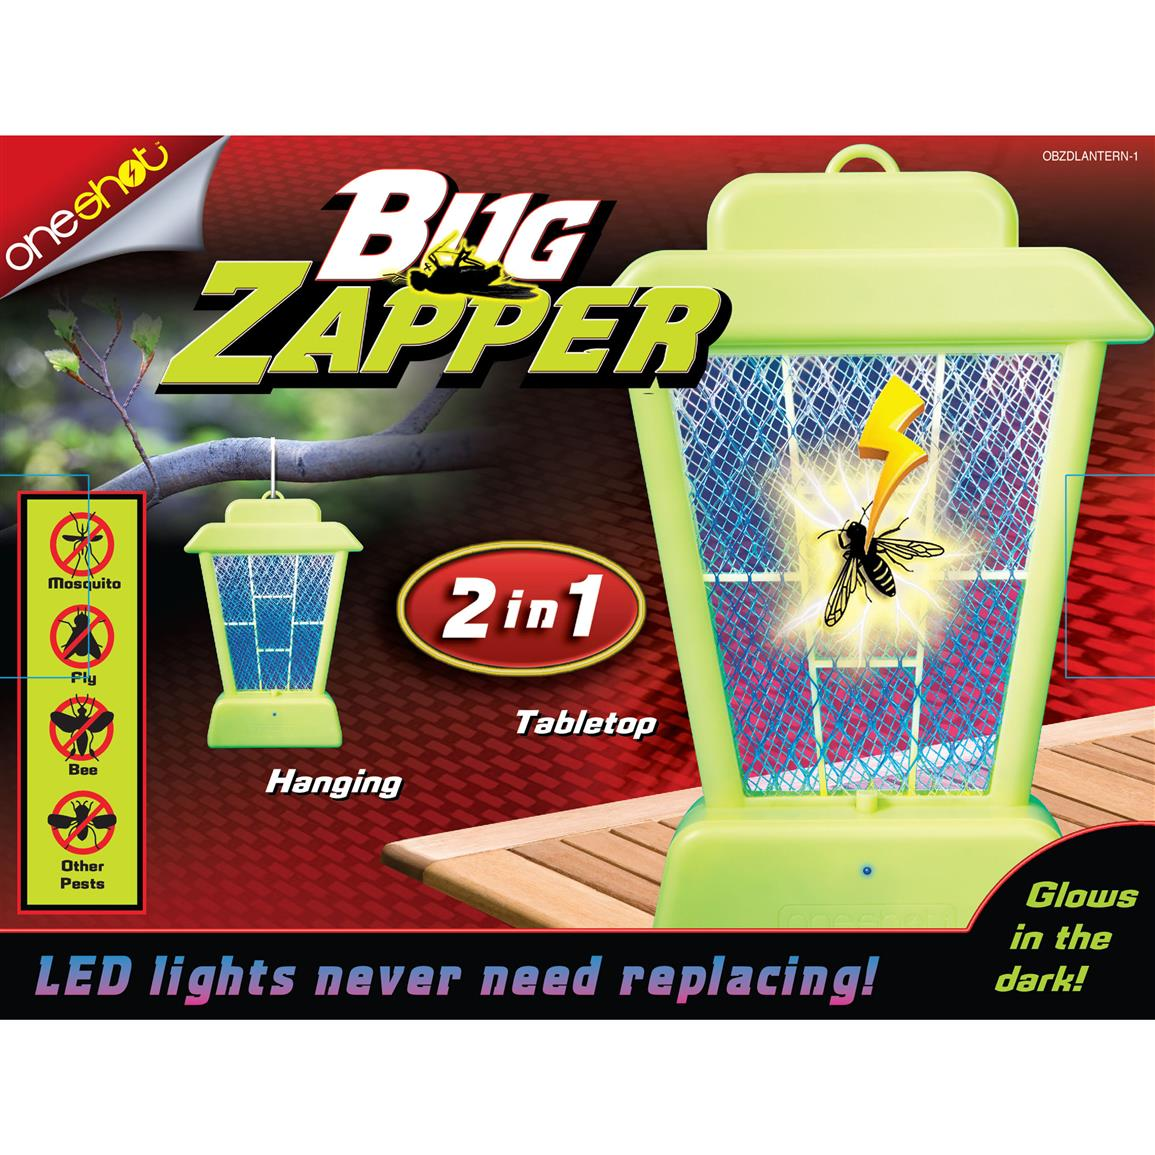 Kills insects on contact with no harmful chemicals